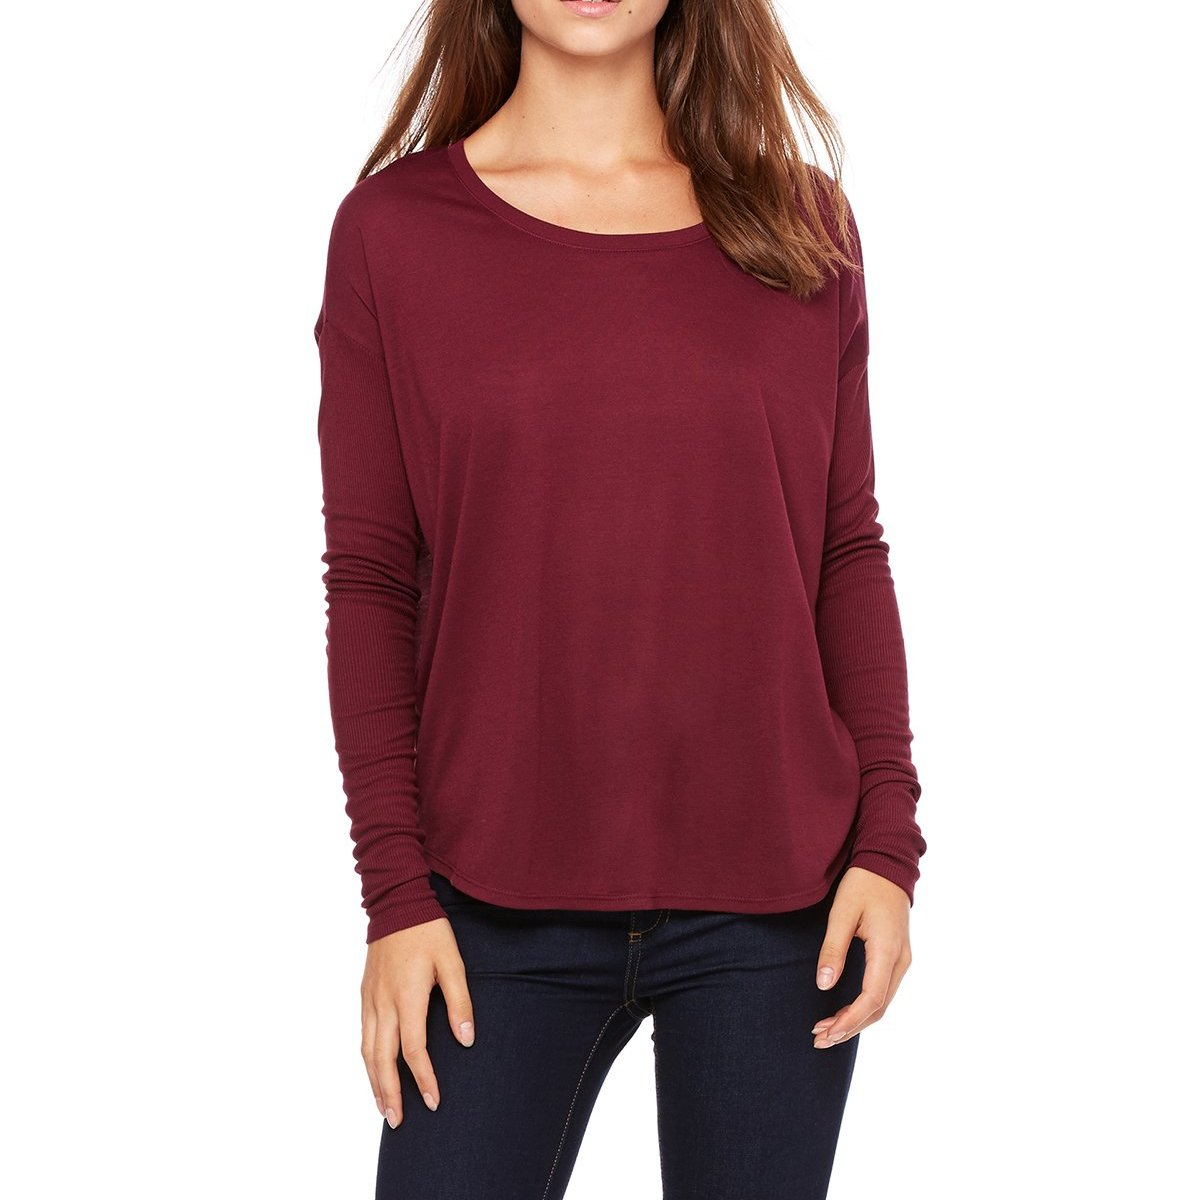 Custom Designed Women's Scoop Neck Long Sleeve Shirt